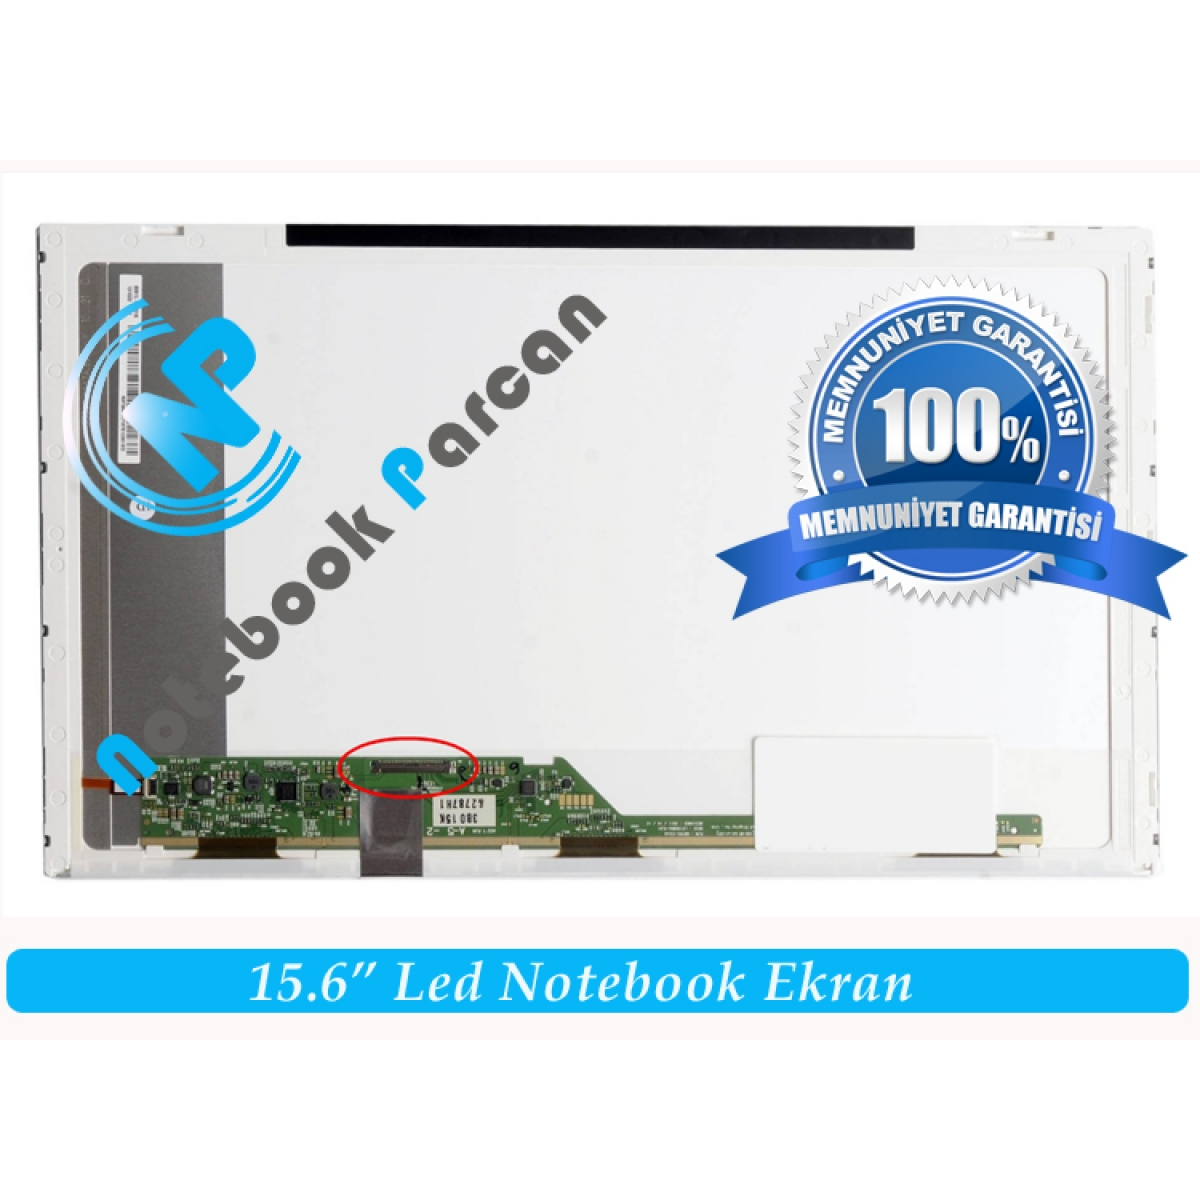 Toshiba Satellite C655D-S5135 Ekran 15.6 Led Pa